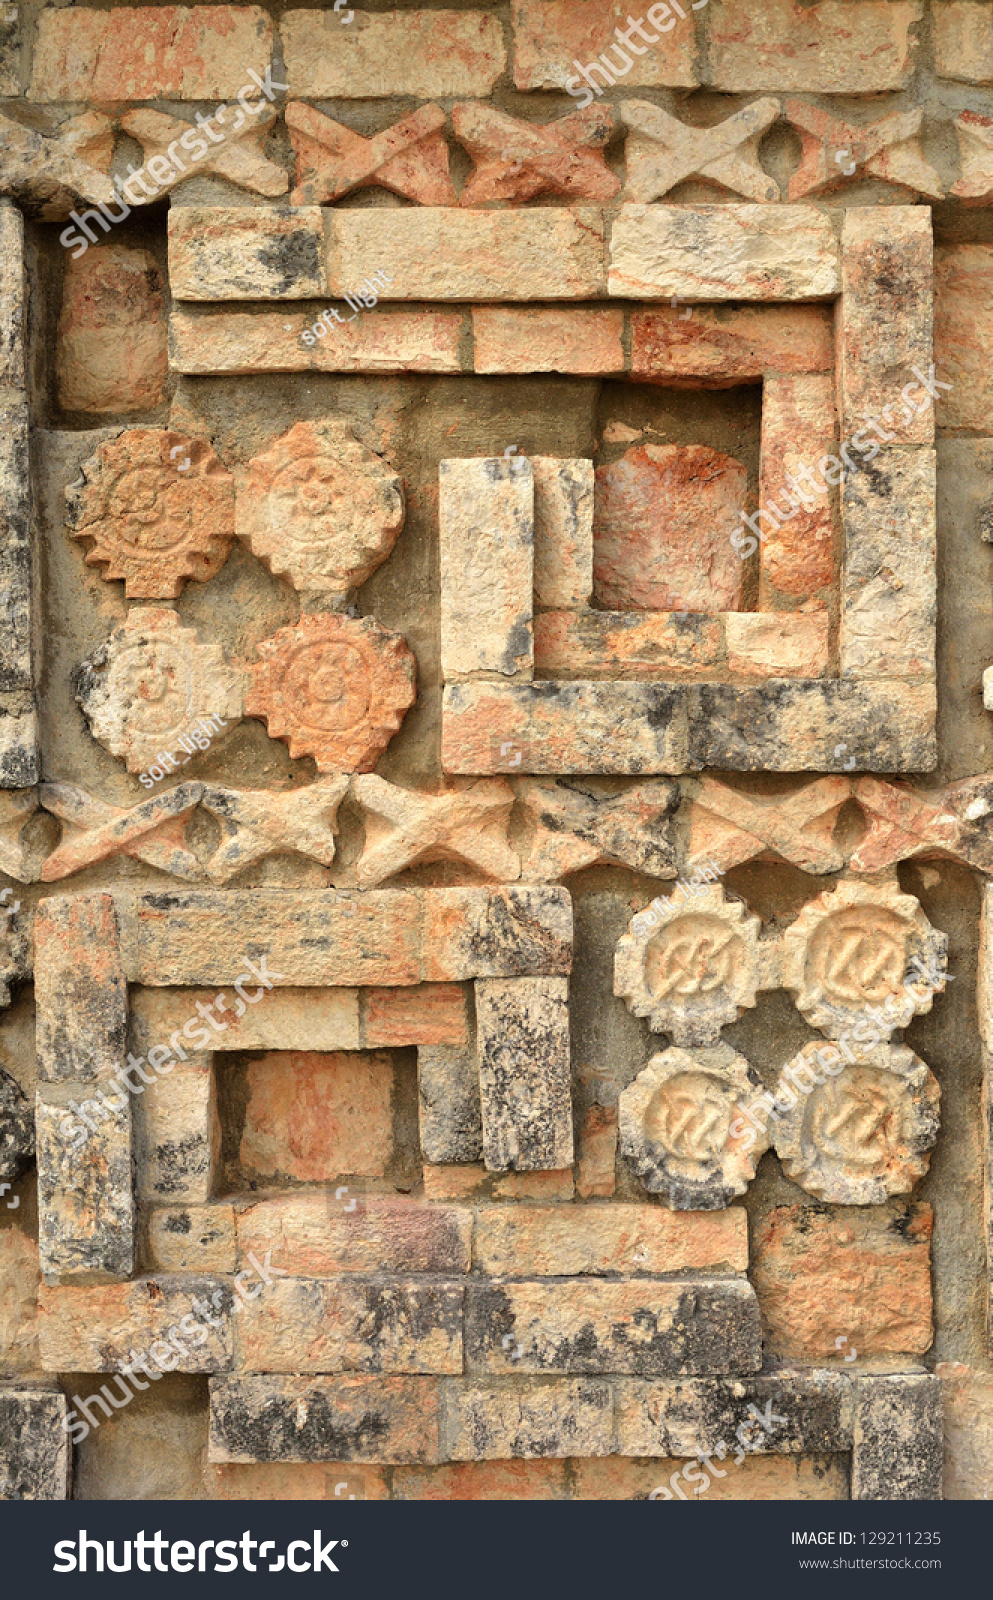 Ancient Mexican Designs And Symbols On The Pyramids Of The Maya Of